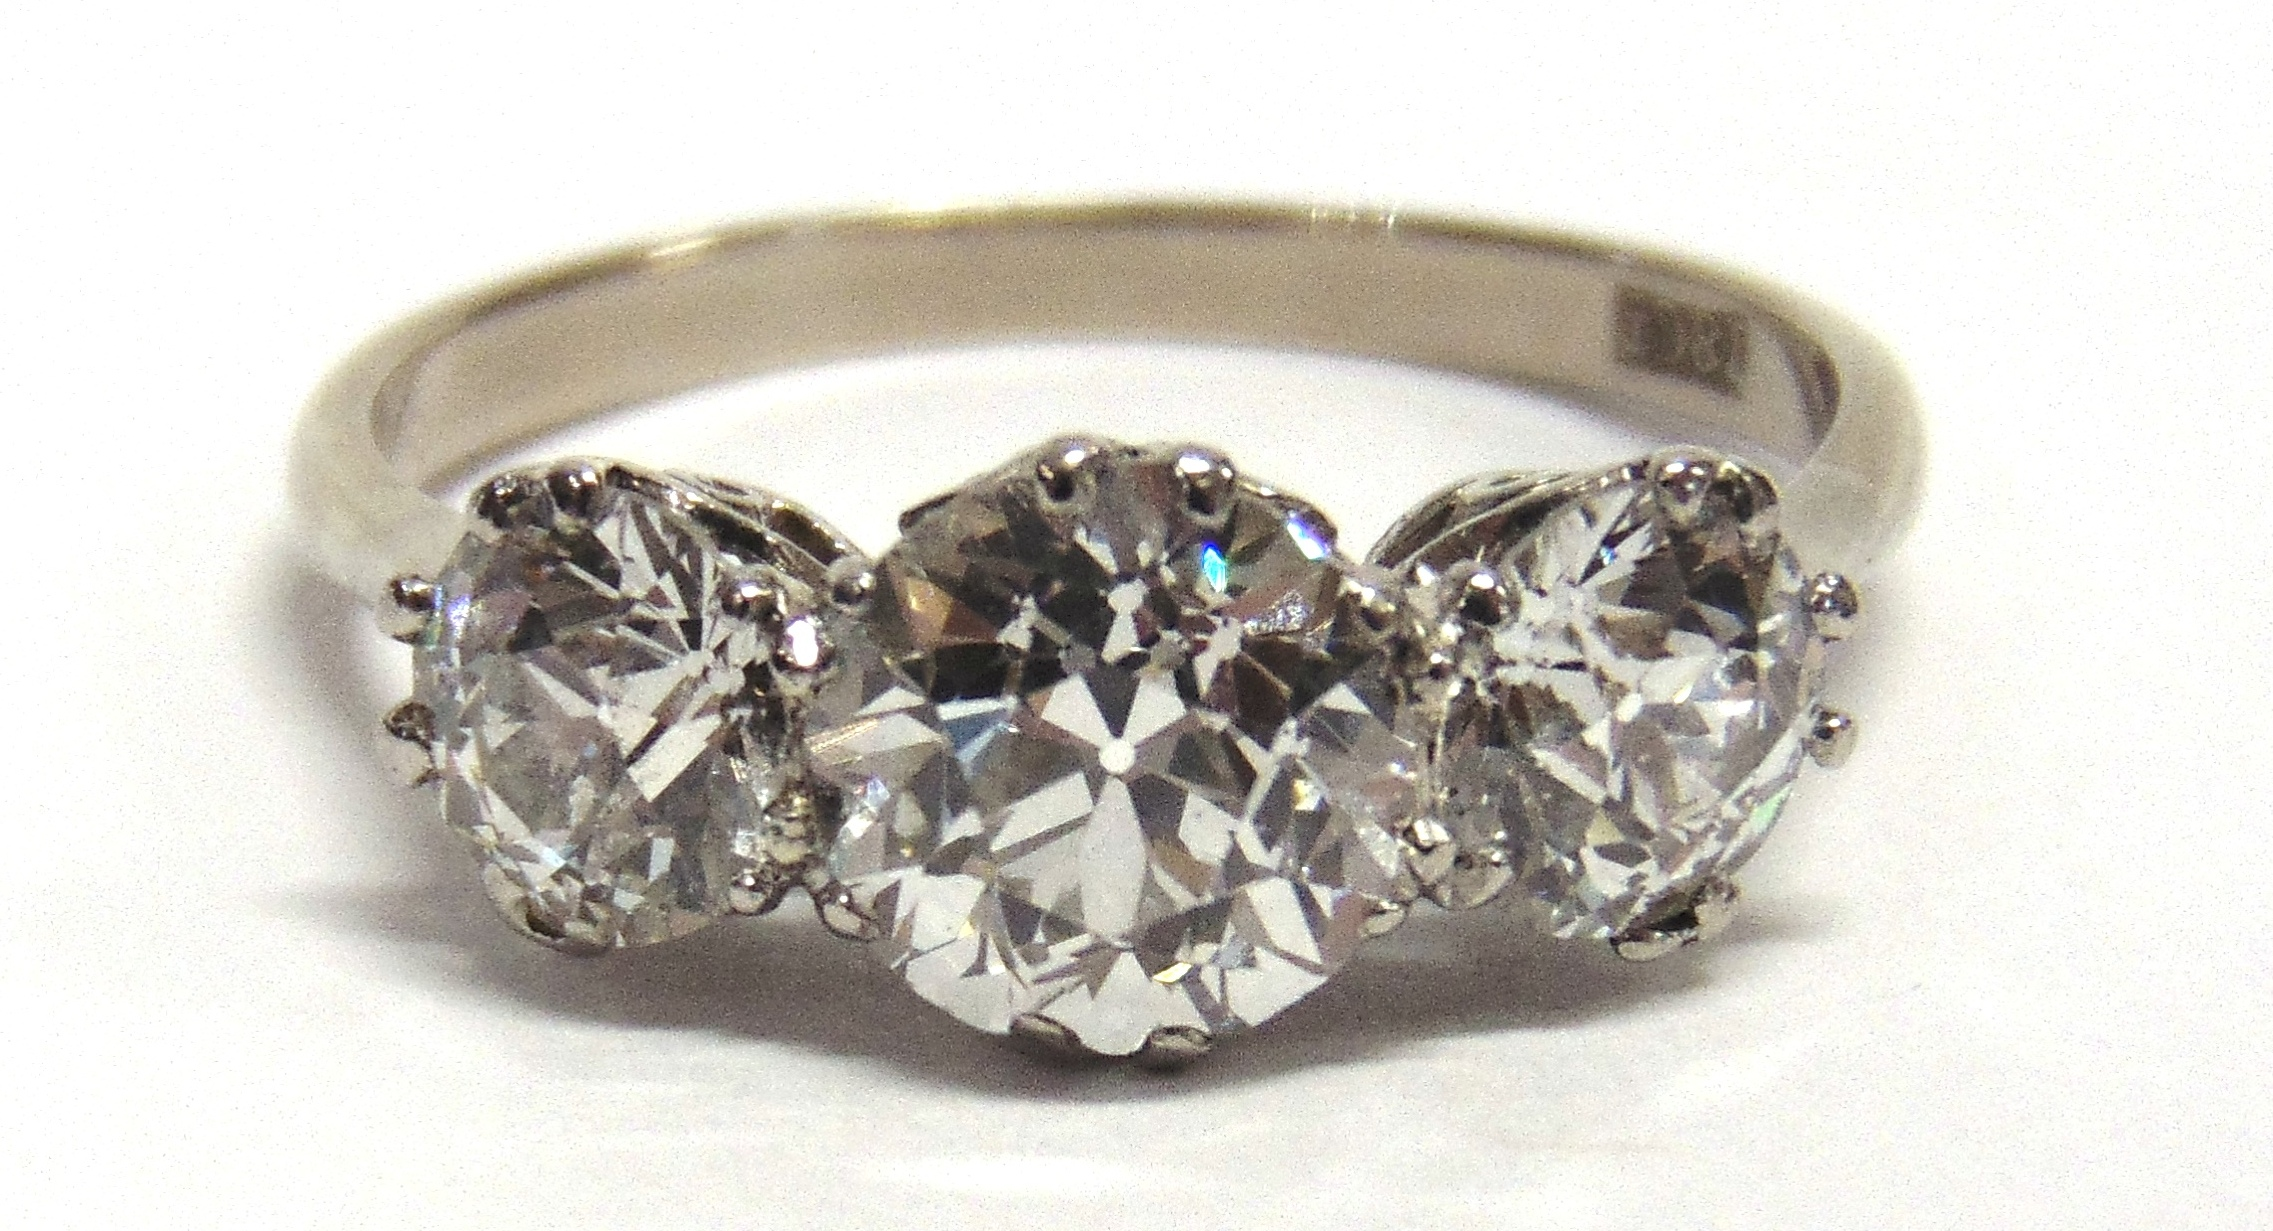 DIAMONDS: This 18ct white gold three stone diamond ring was bought for £5,200 at Greenslade Taylor Hunt's May sale